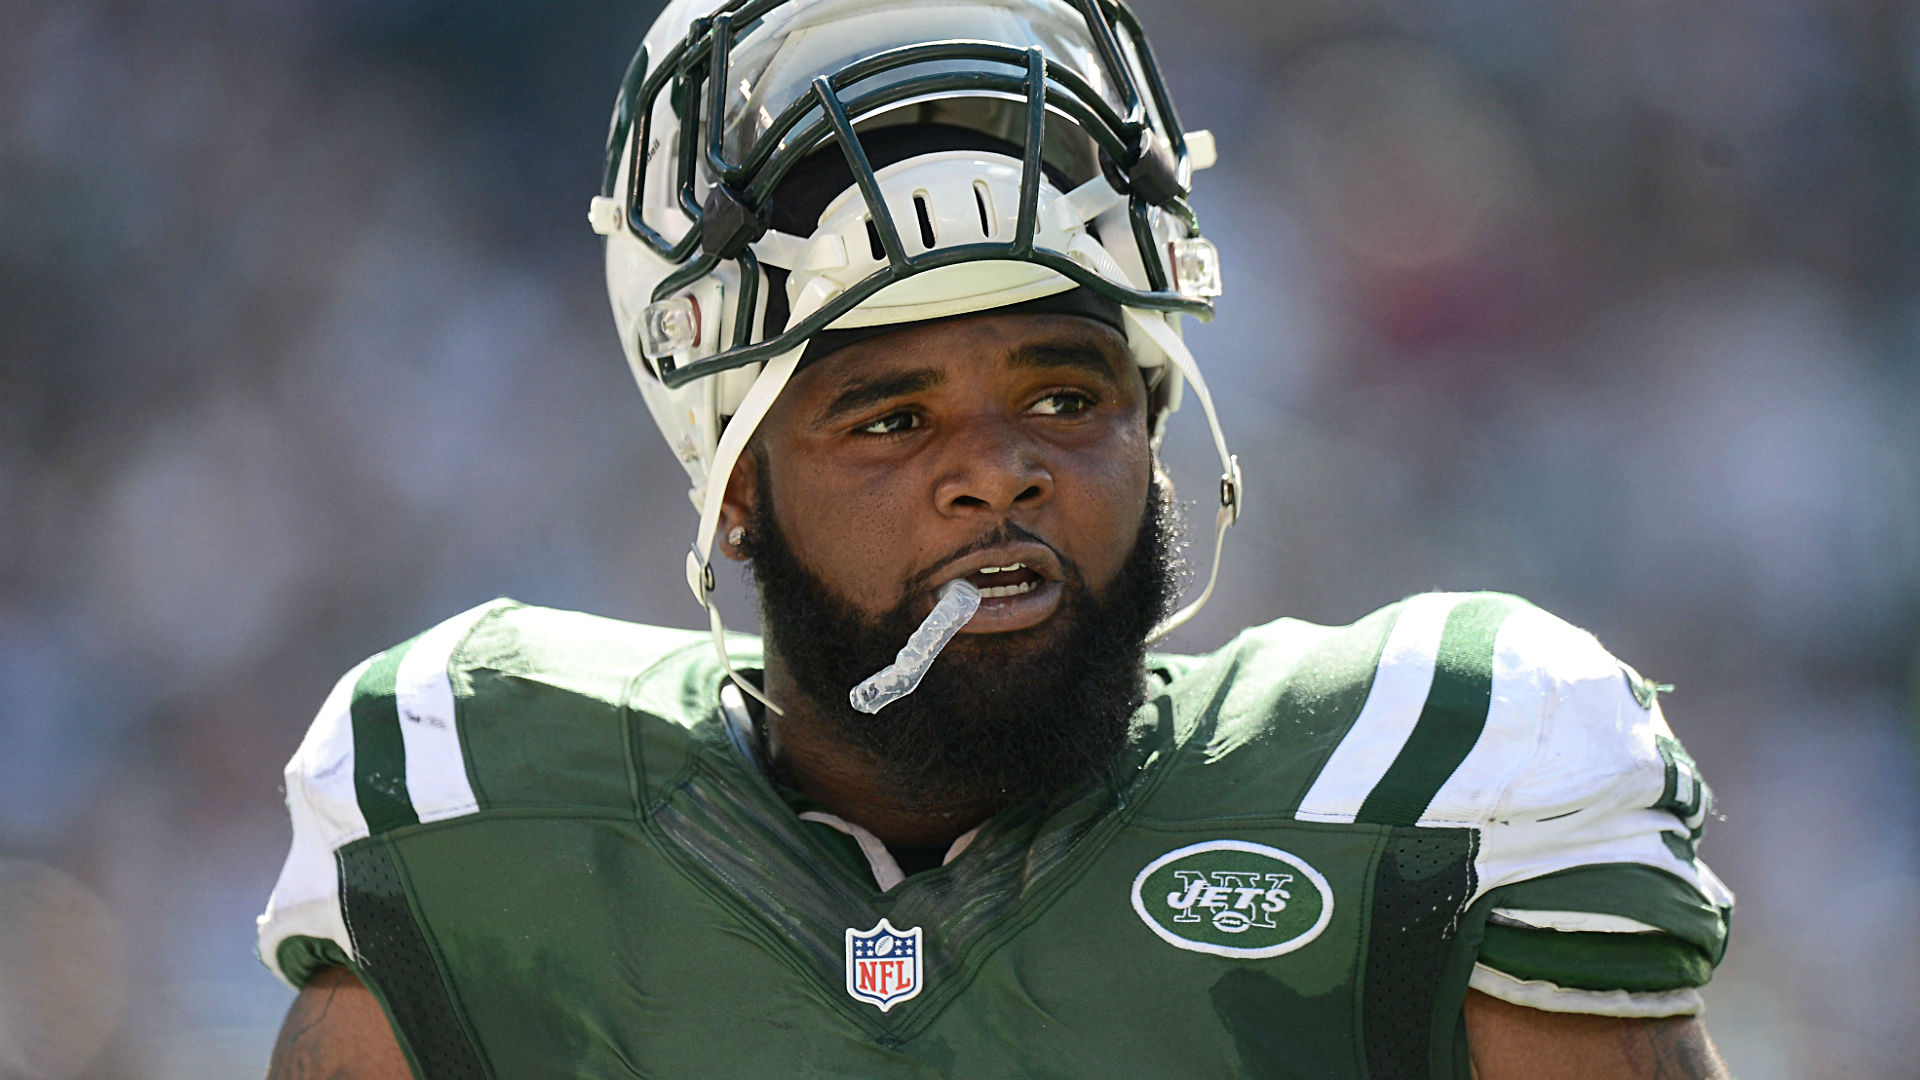 Sheldon Richardson before Jets Dolphins game F— this